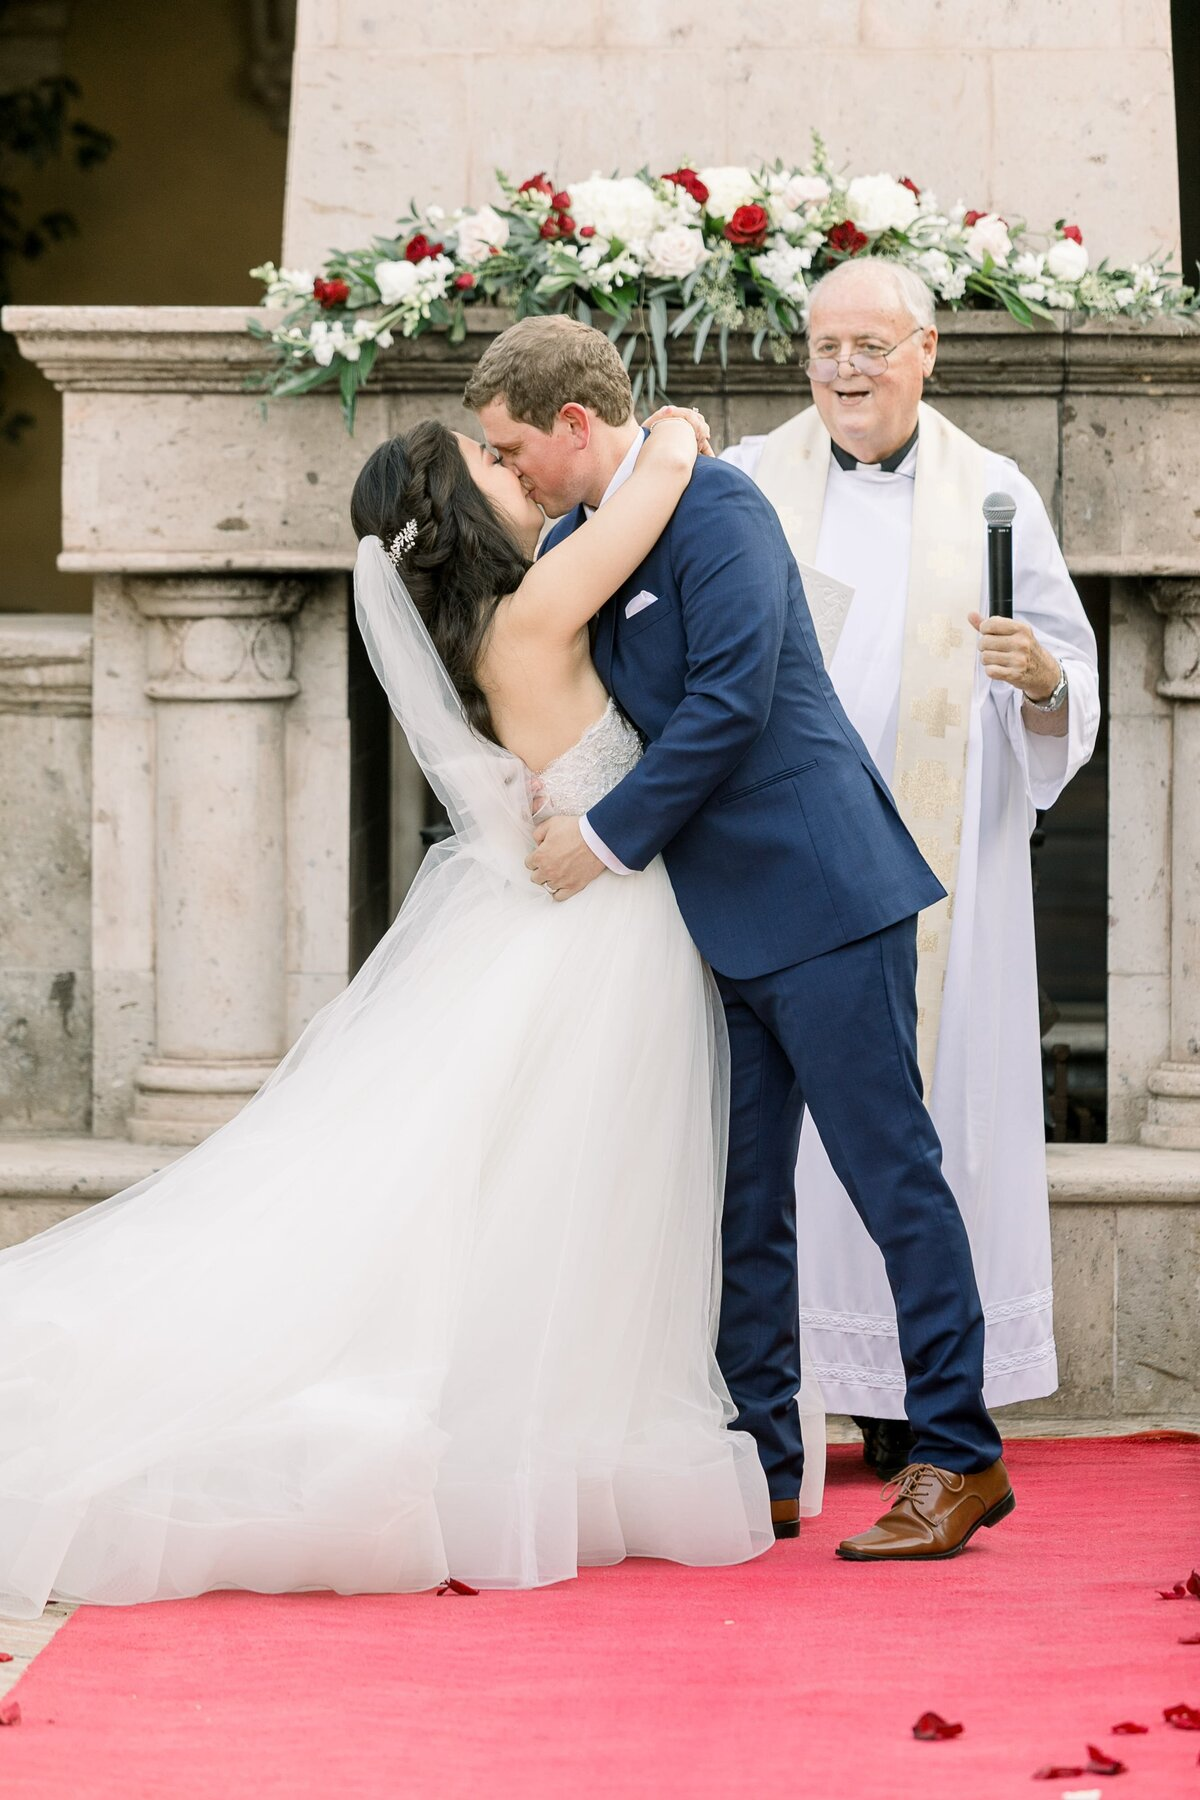 bride-and-groom0frist-kiss-as-newlyweds